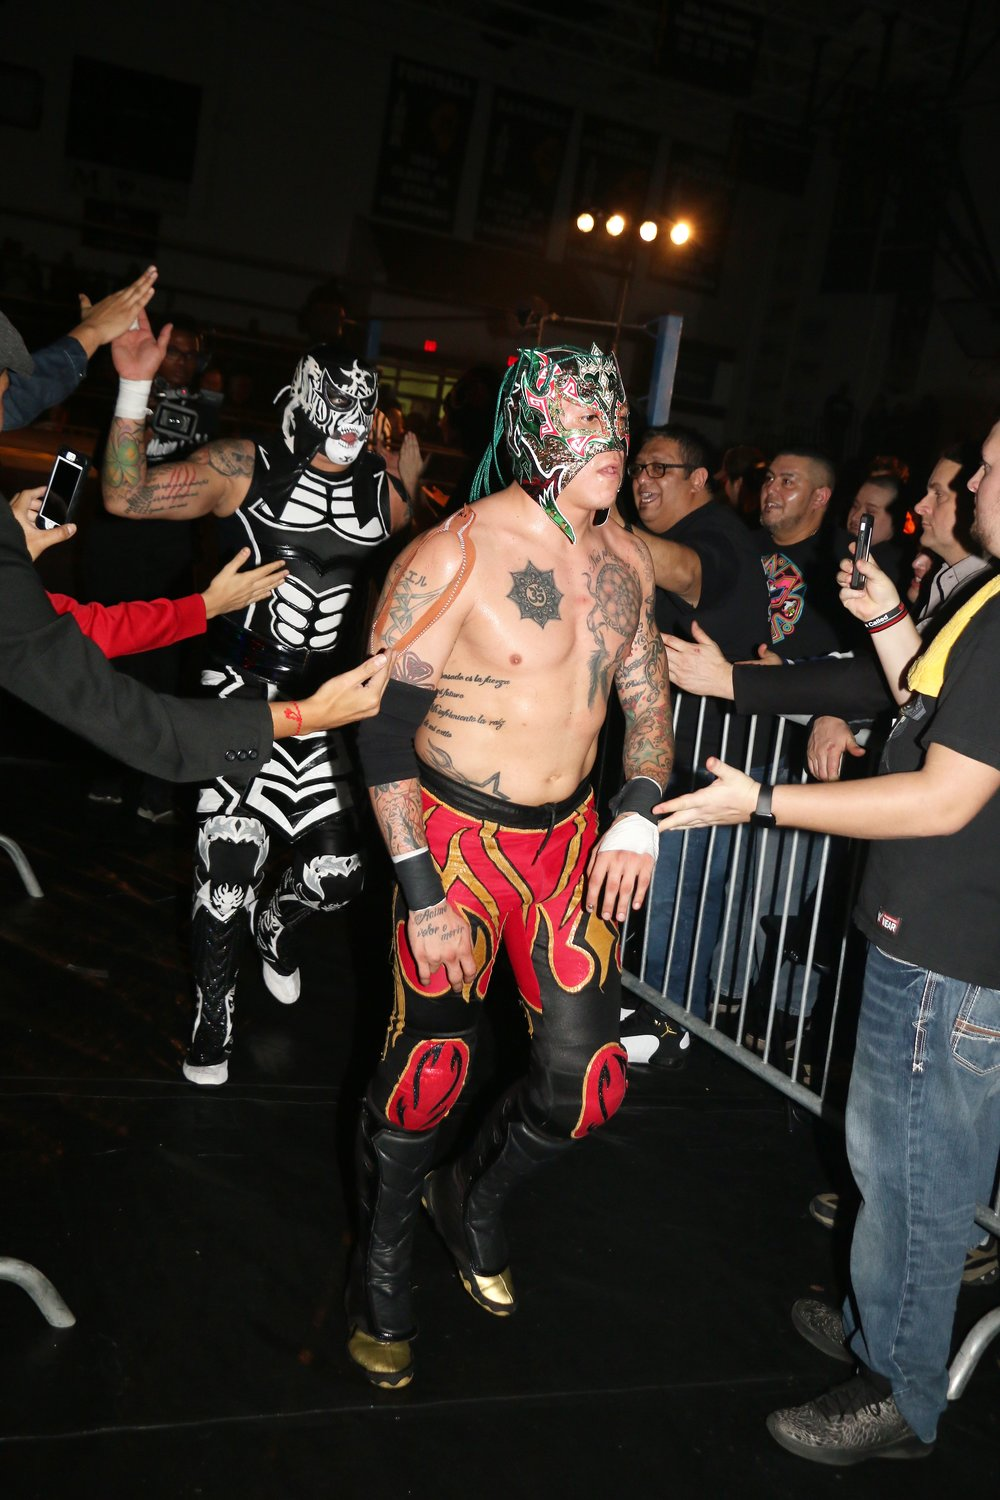 Fans greet the Lucha Bros. after their tag team victory.